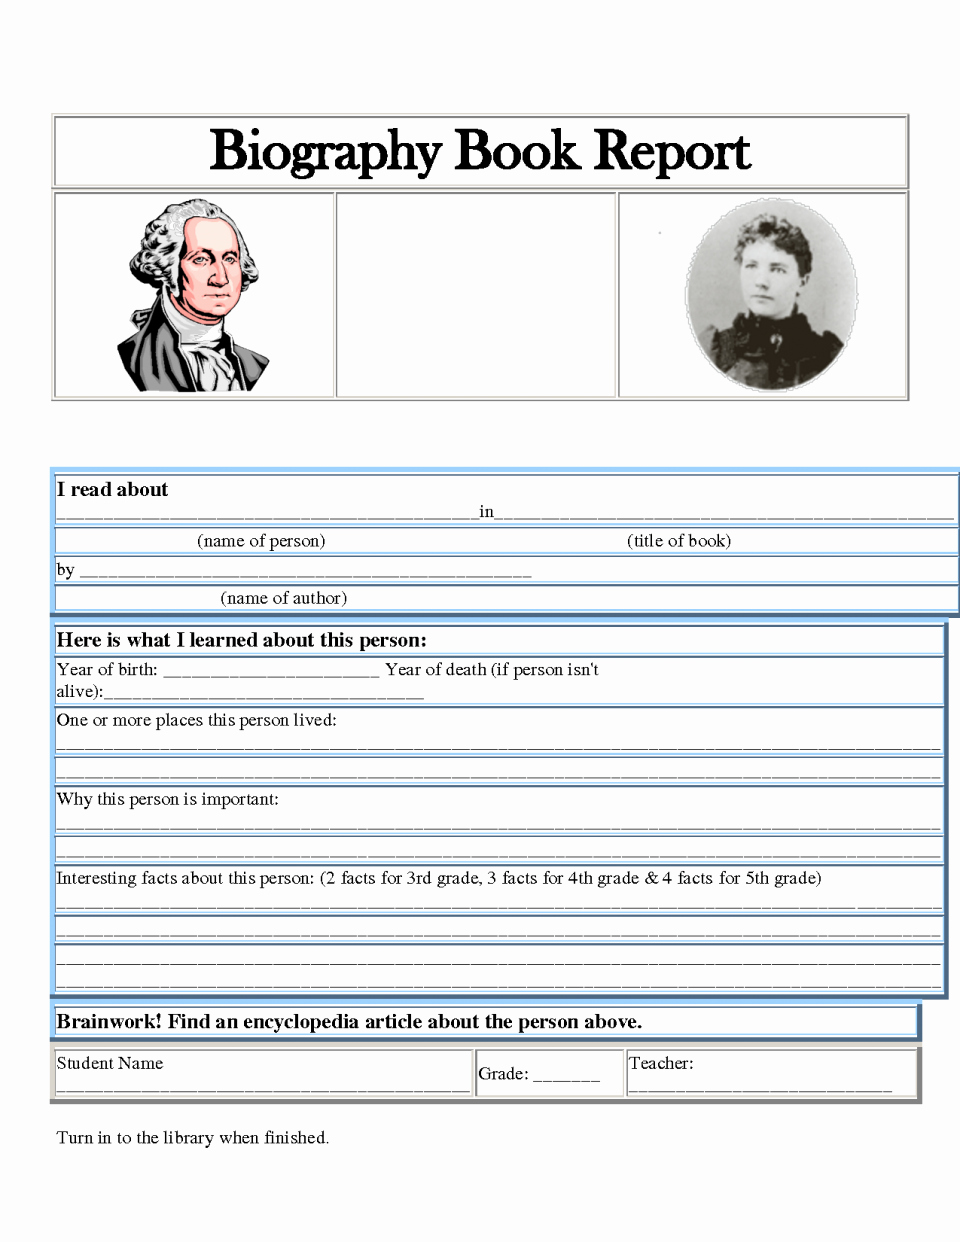 Autobiography Template for Elementary Students Lovely Biography Report Template Book Pdf form for Elementary